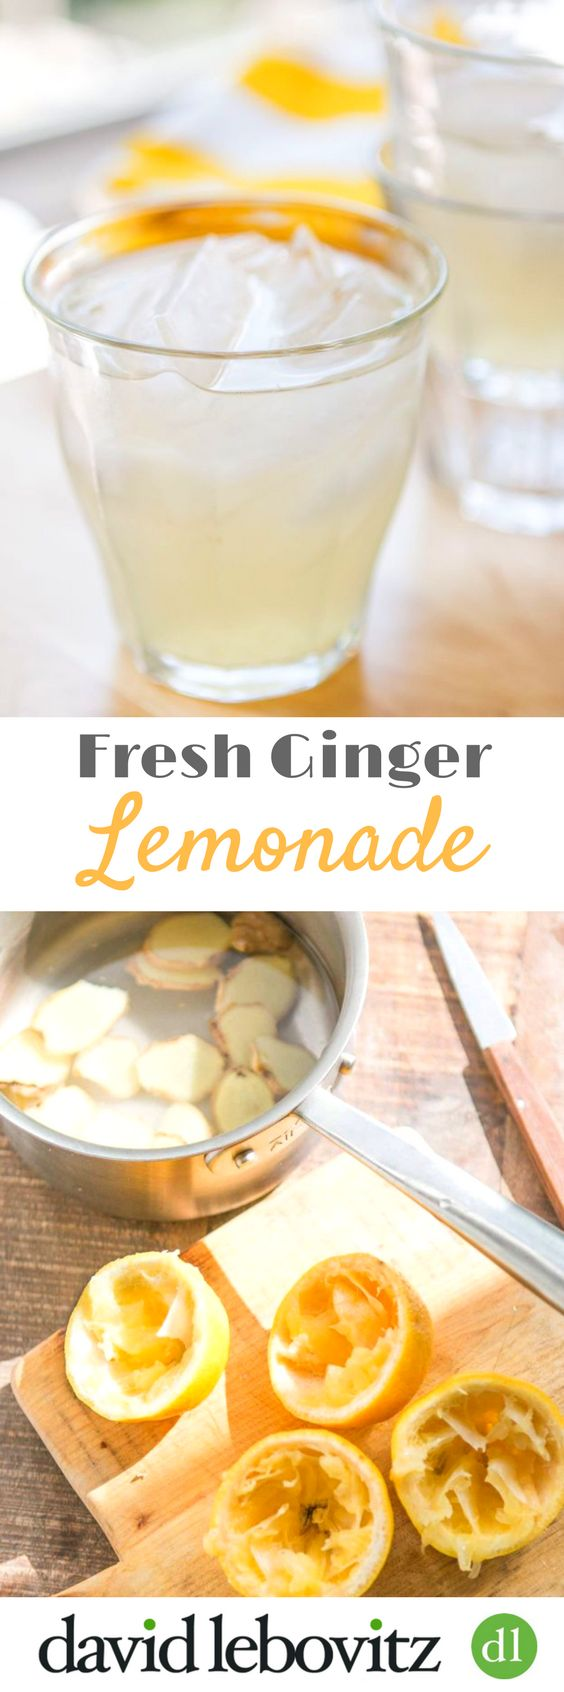 Try this refreshing fresh lemonade recipe with the zing of fresh ginger. It's the perfect summer beverage for a picnic, bbq, or outdoor party!